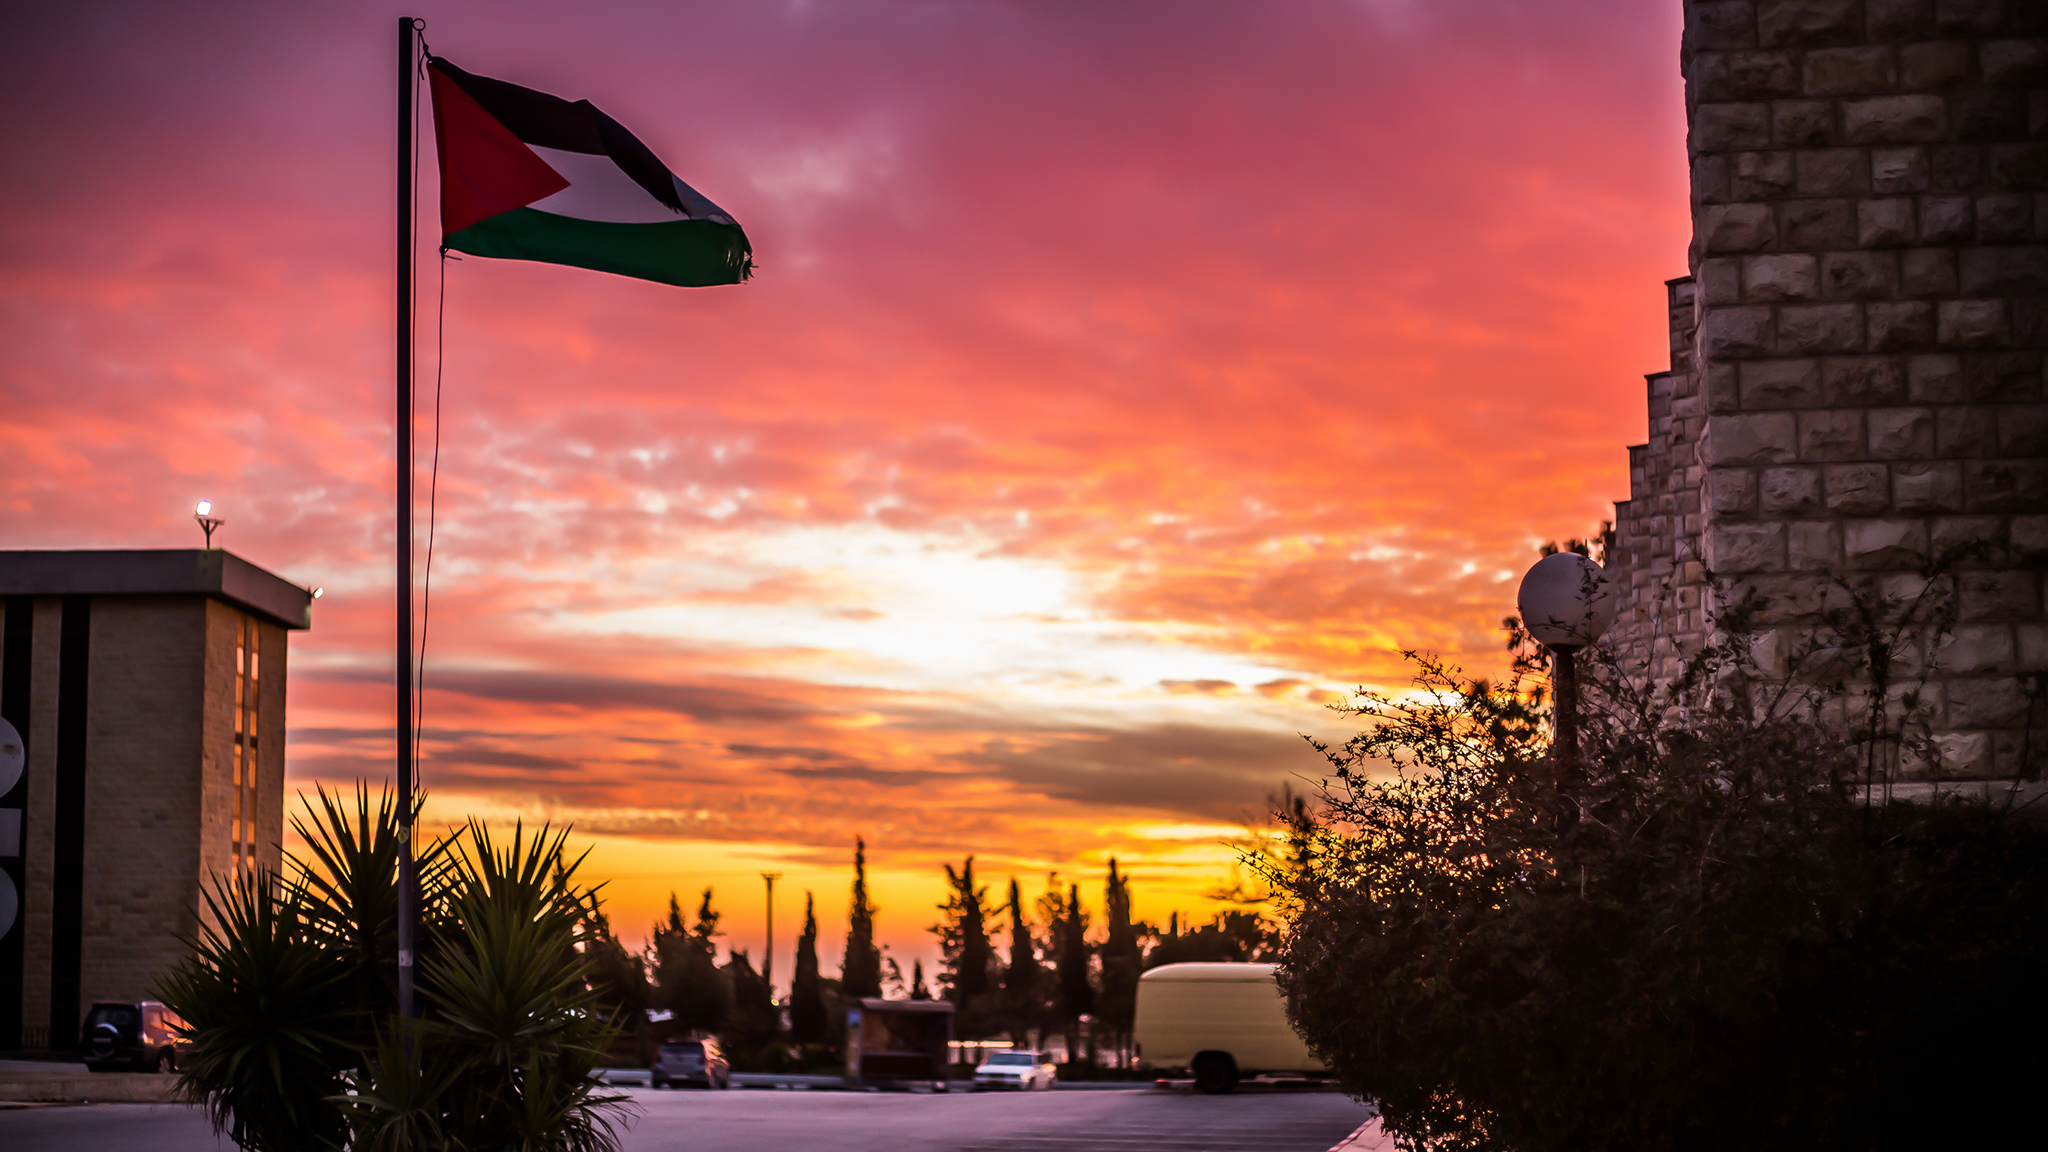 Palestinian flag flying over Birzeit University